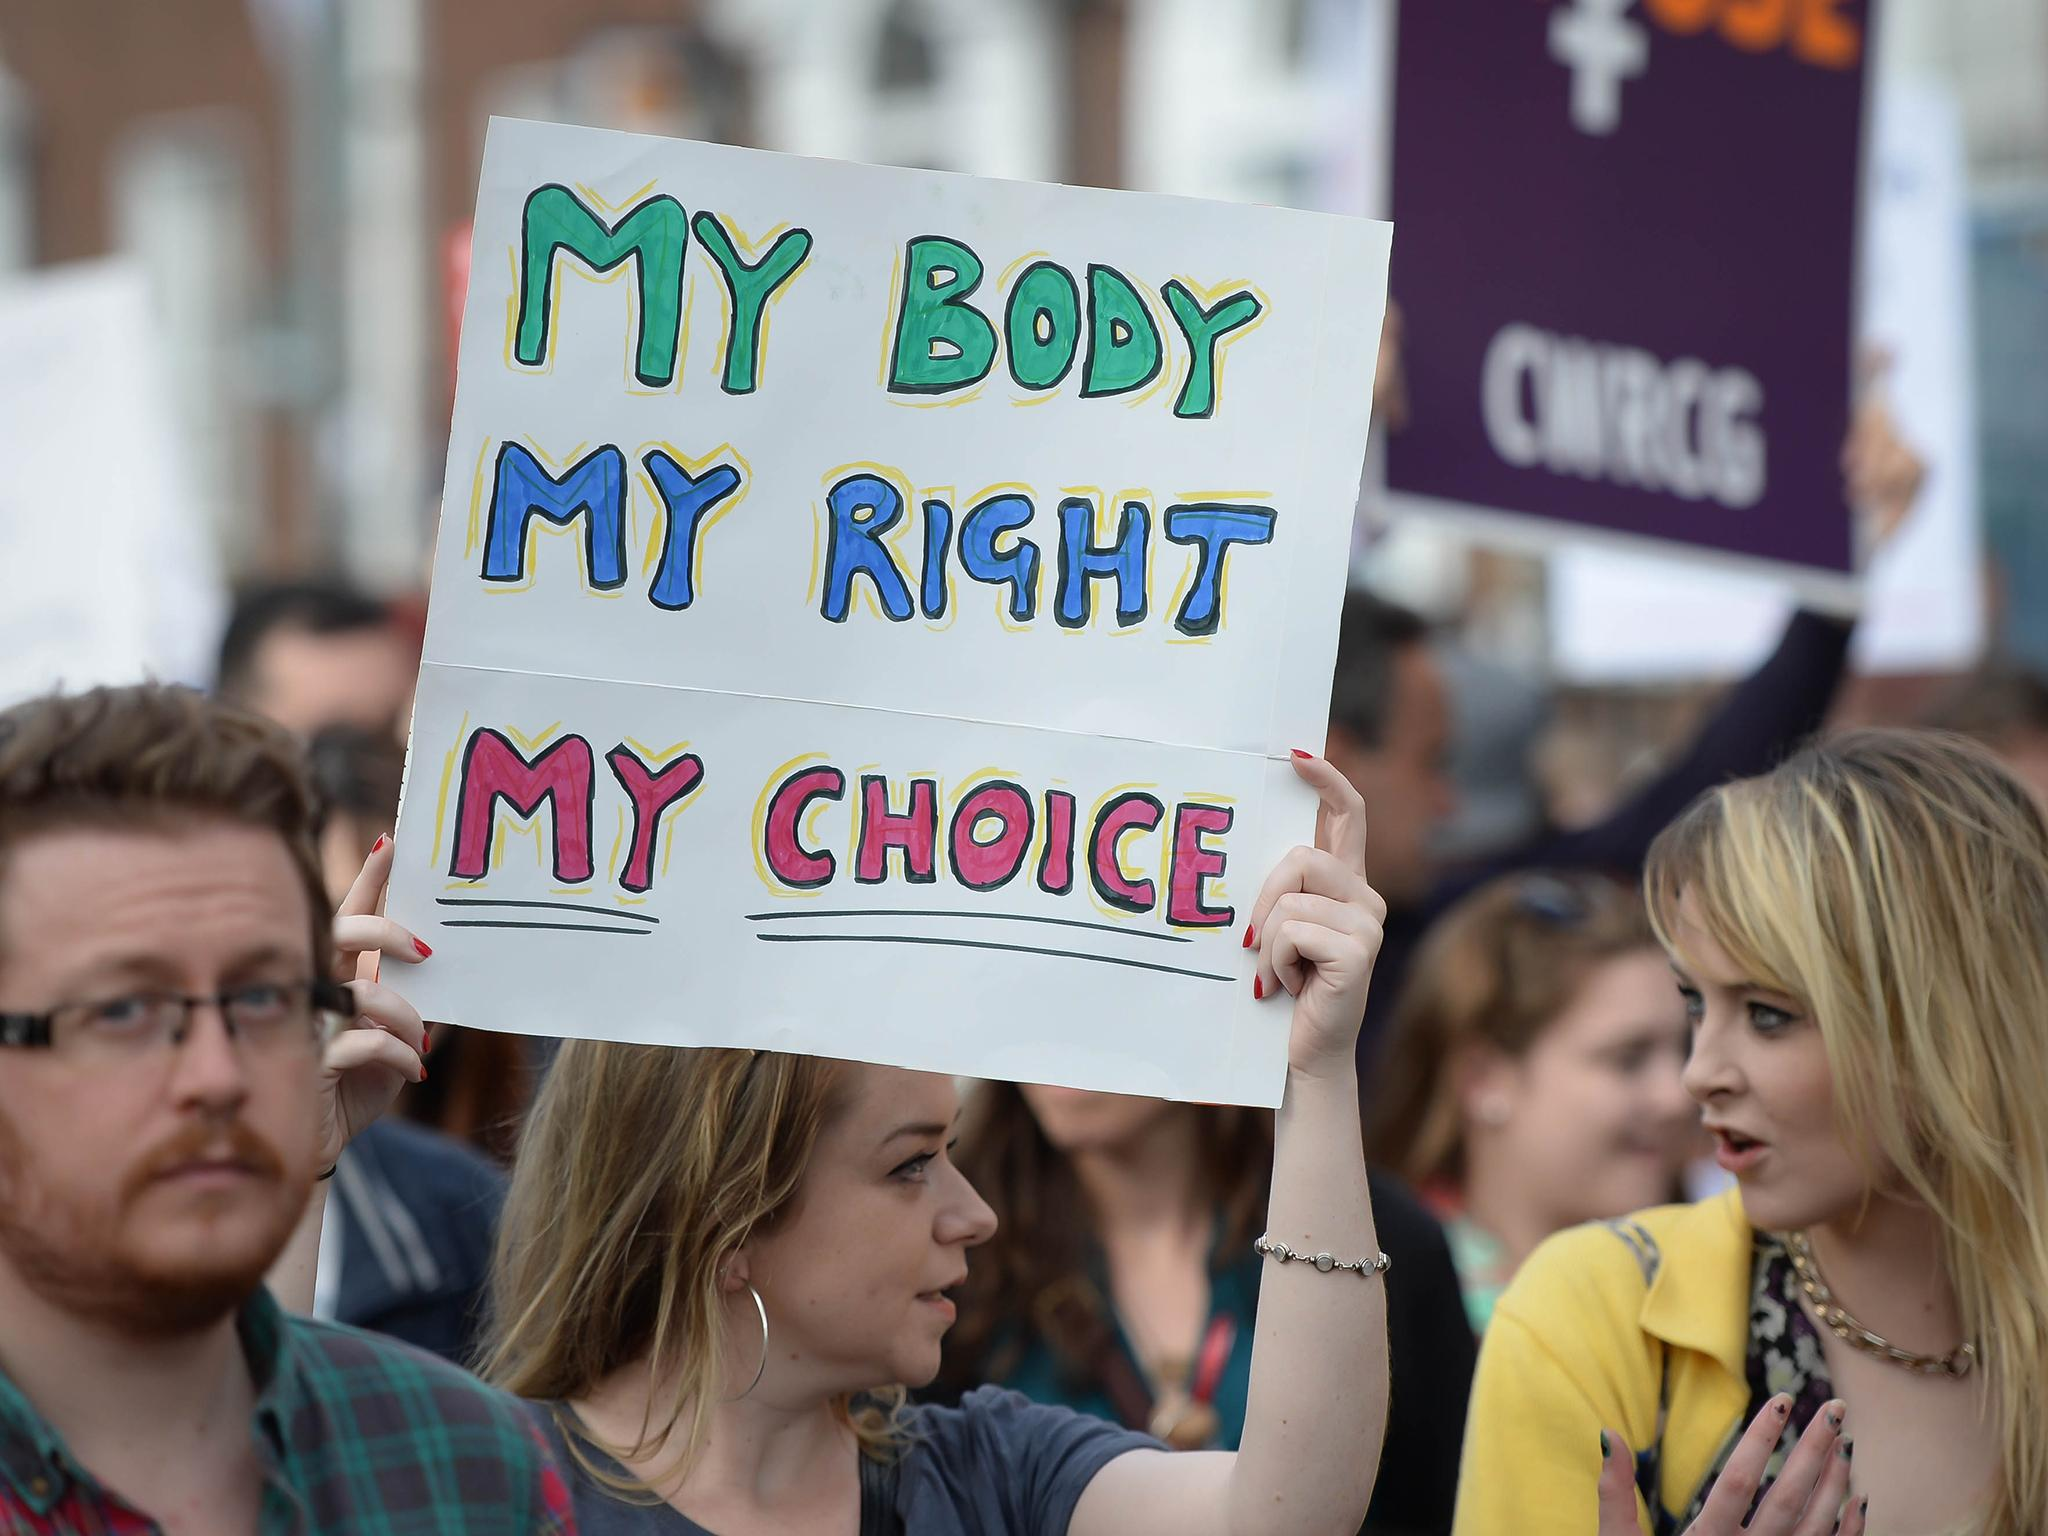 Ireland abortion referendum: TV debate sparks criticism and complaints as Yes and No campaigners clash